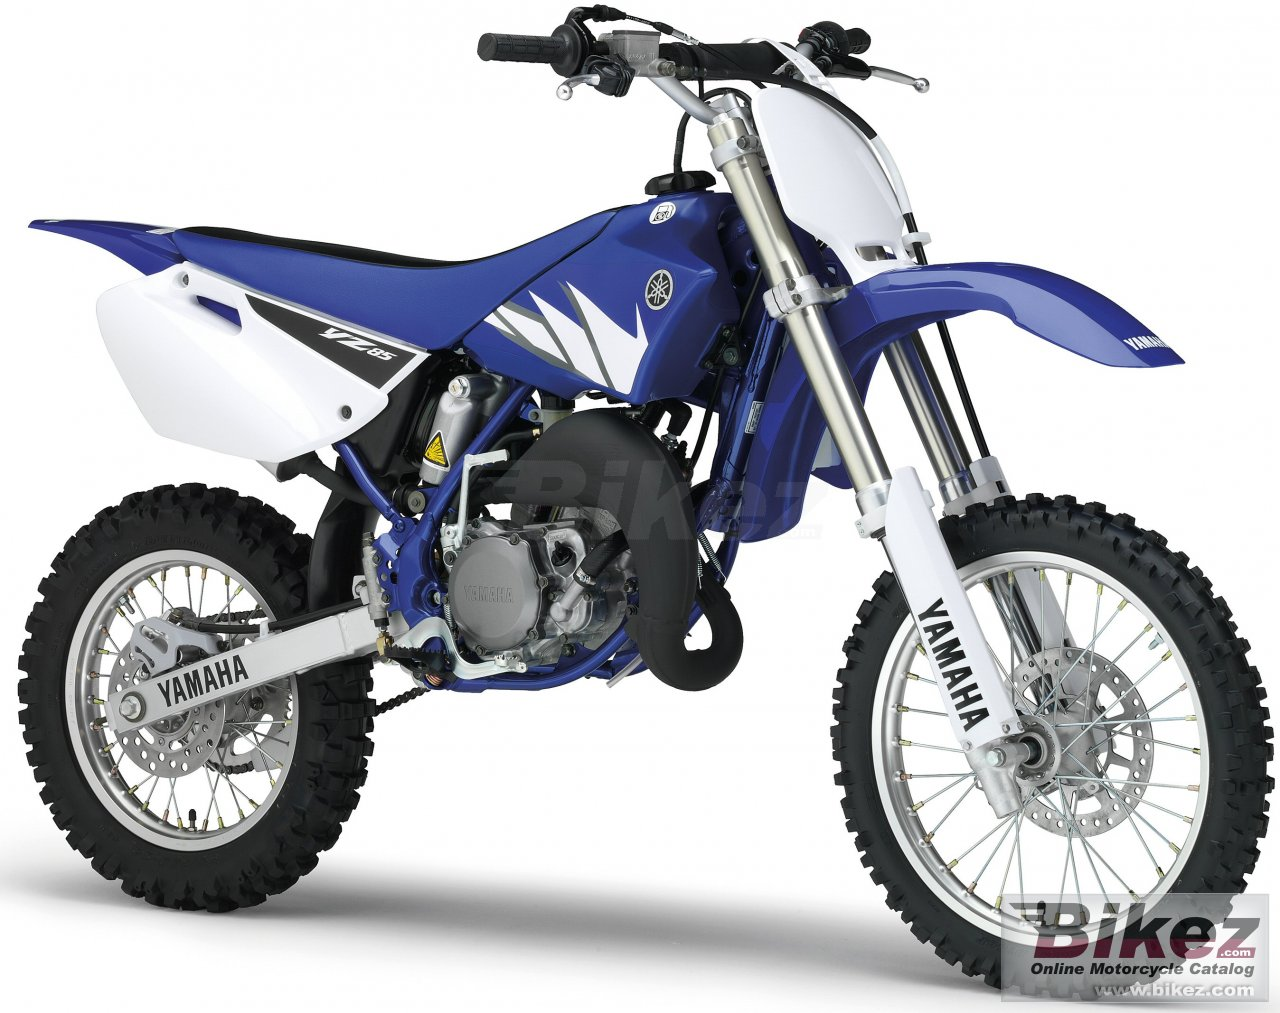 Big Yamaha yz 85 picture and wallpaper from Bikez.com